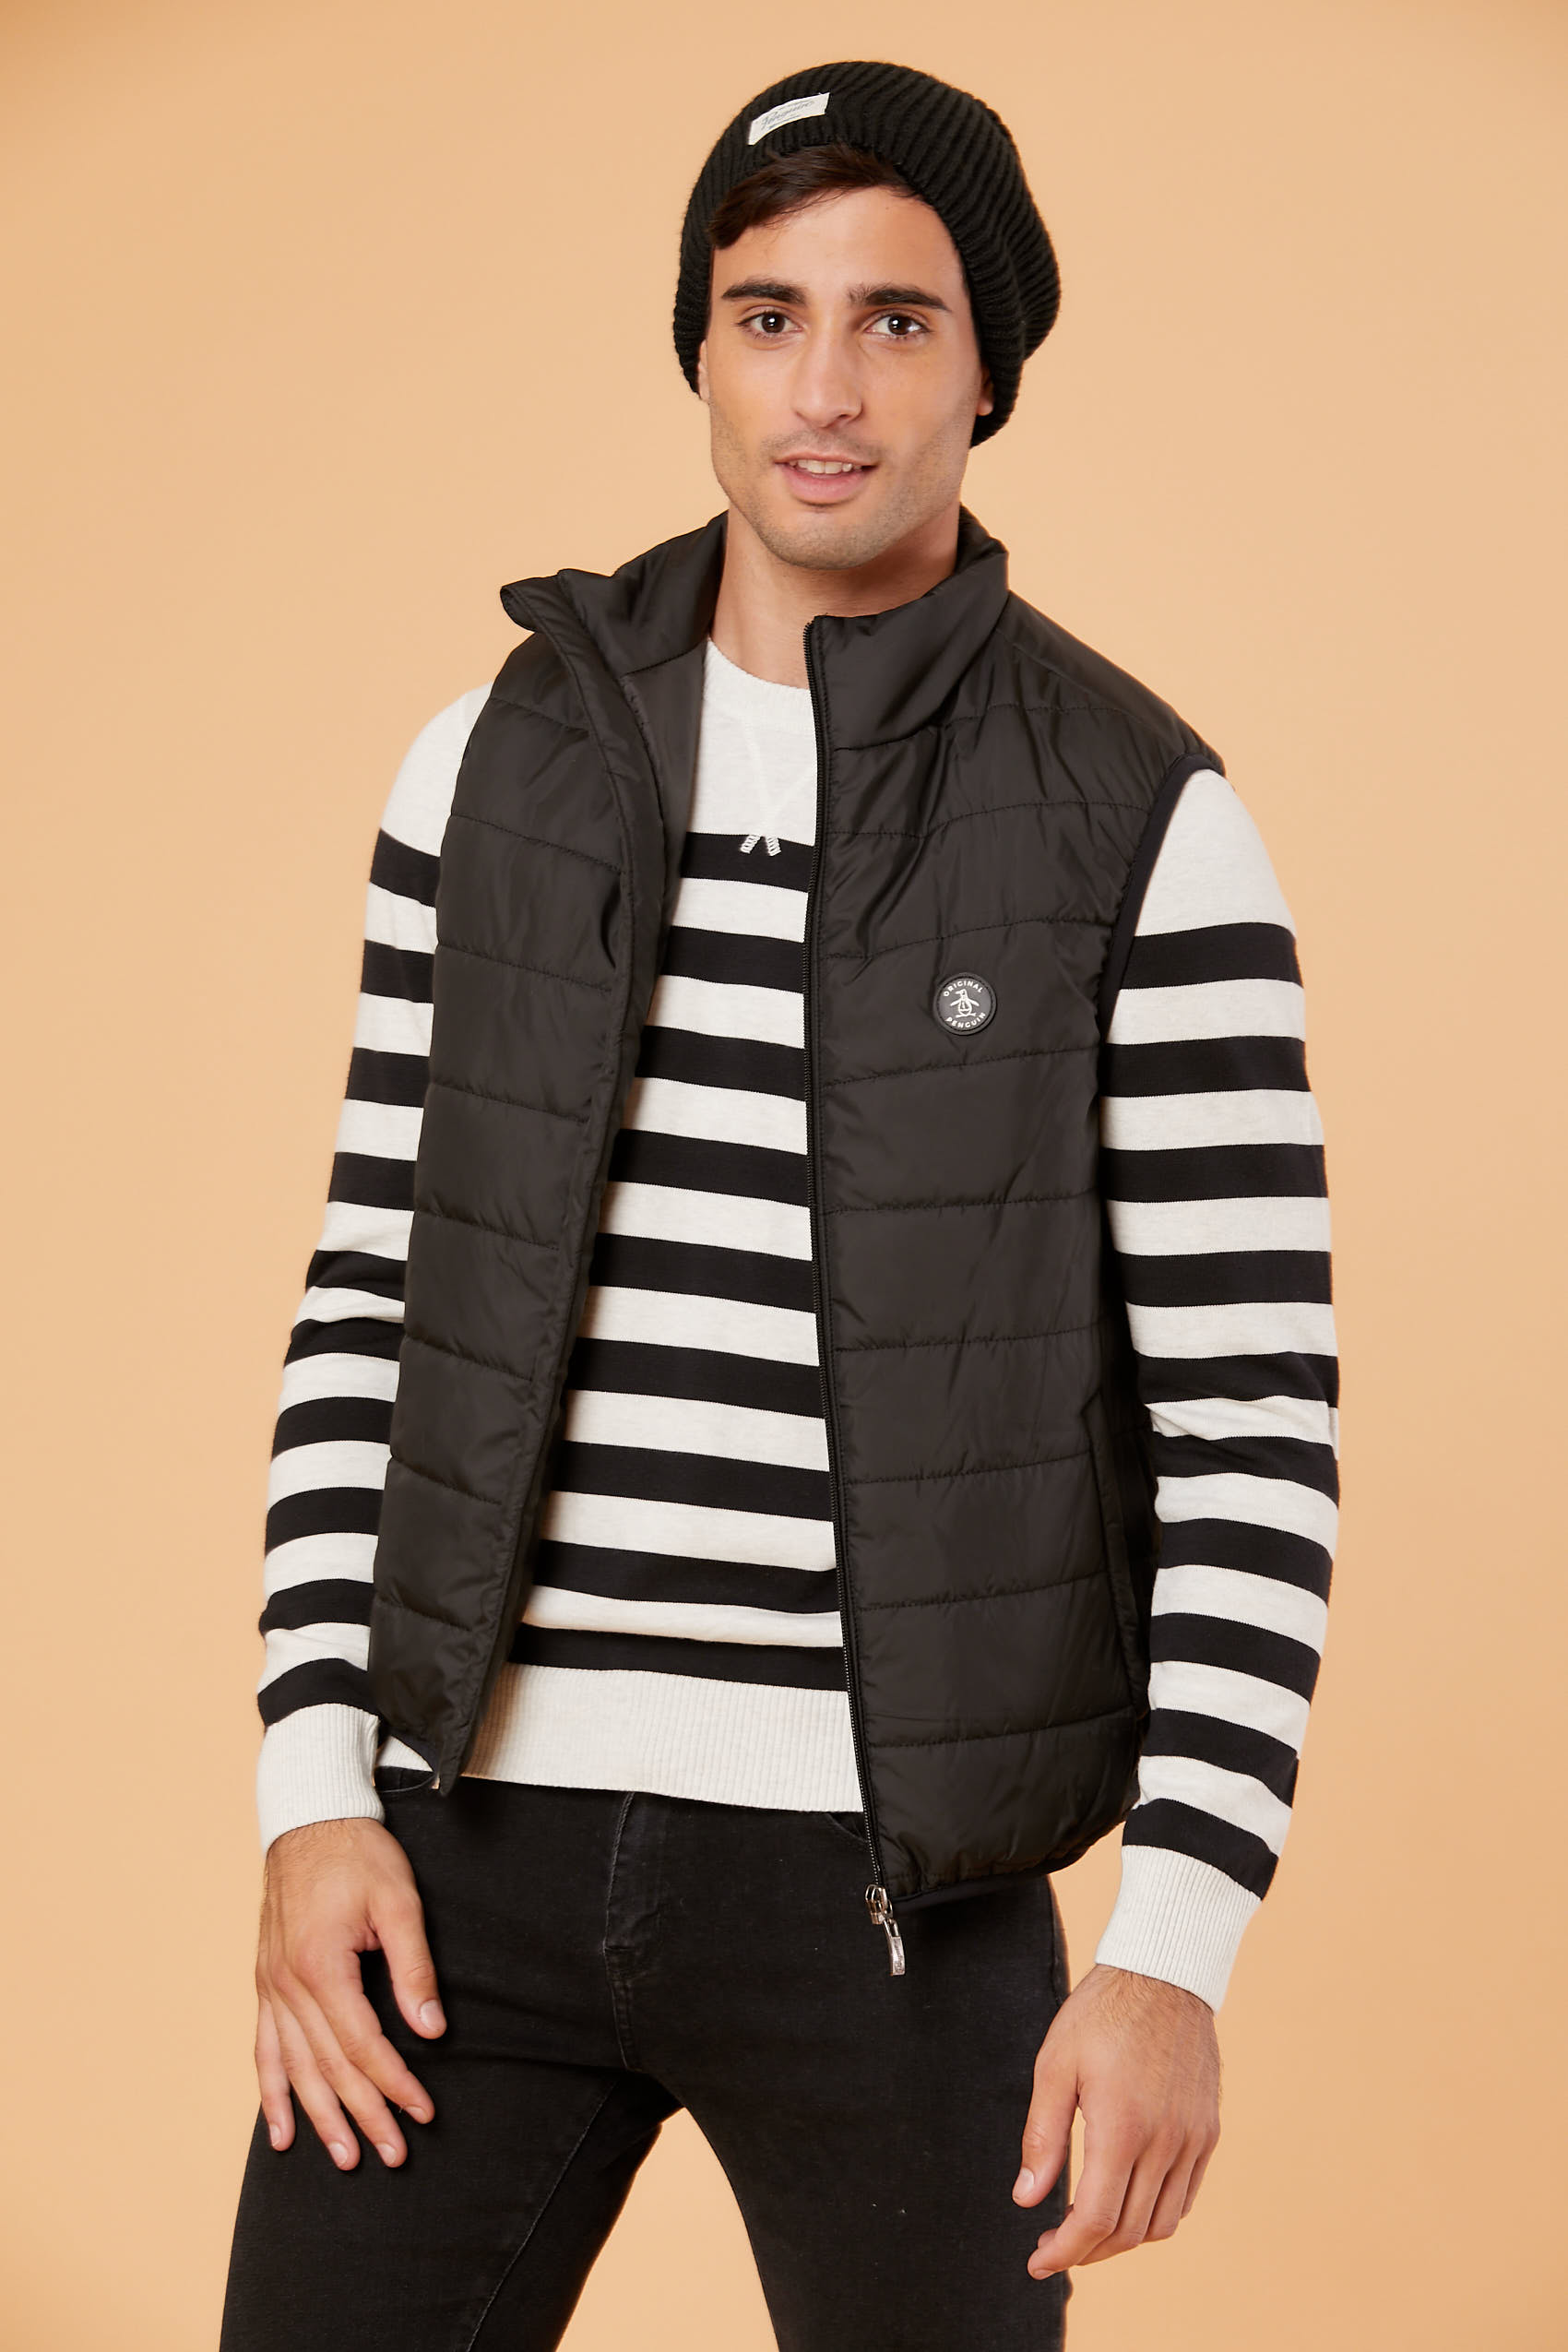 penguin_quilted-solid-vest_50-08-2021__picture-19303